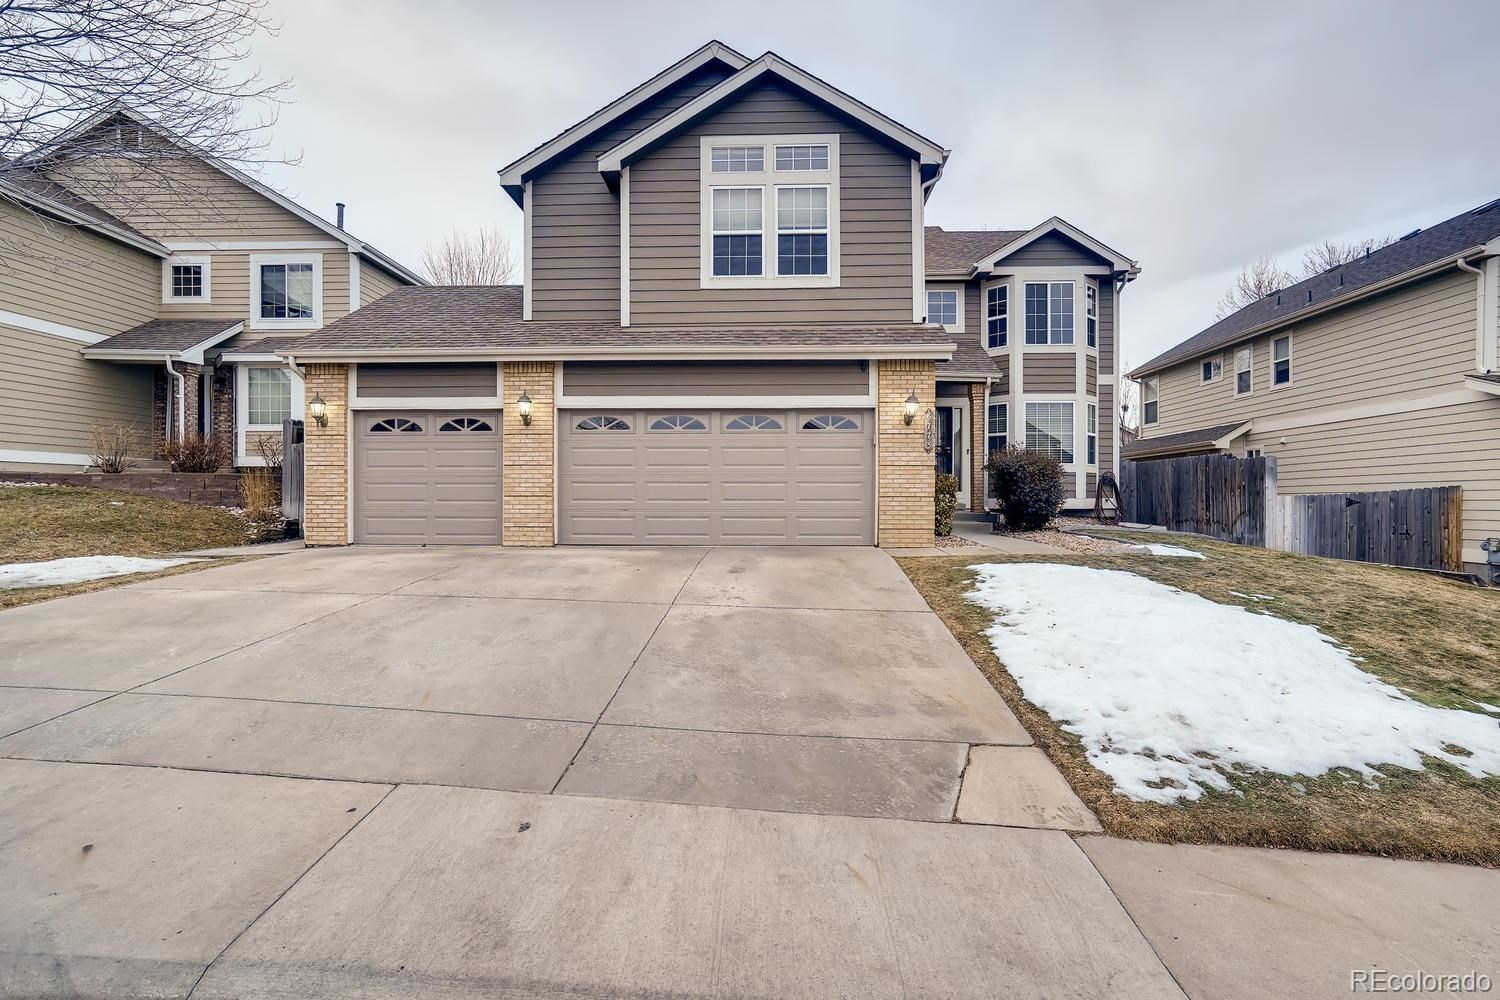 MLS# 6431155 - 1 - 6773 W 98th Circle, Westminster, CO 80021